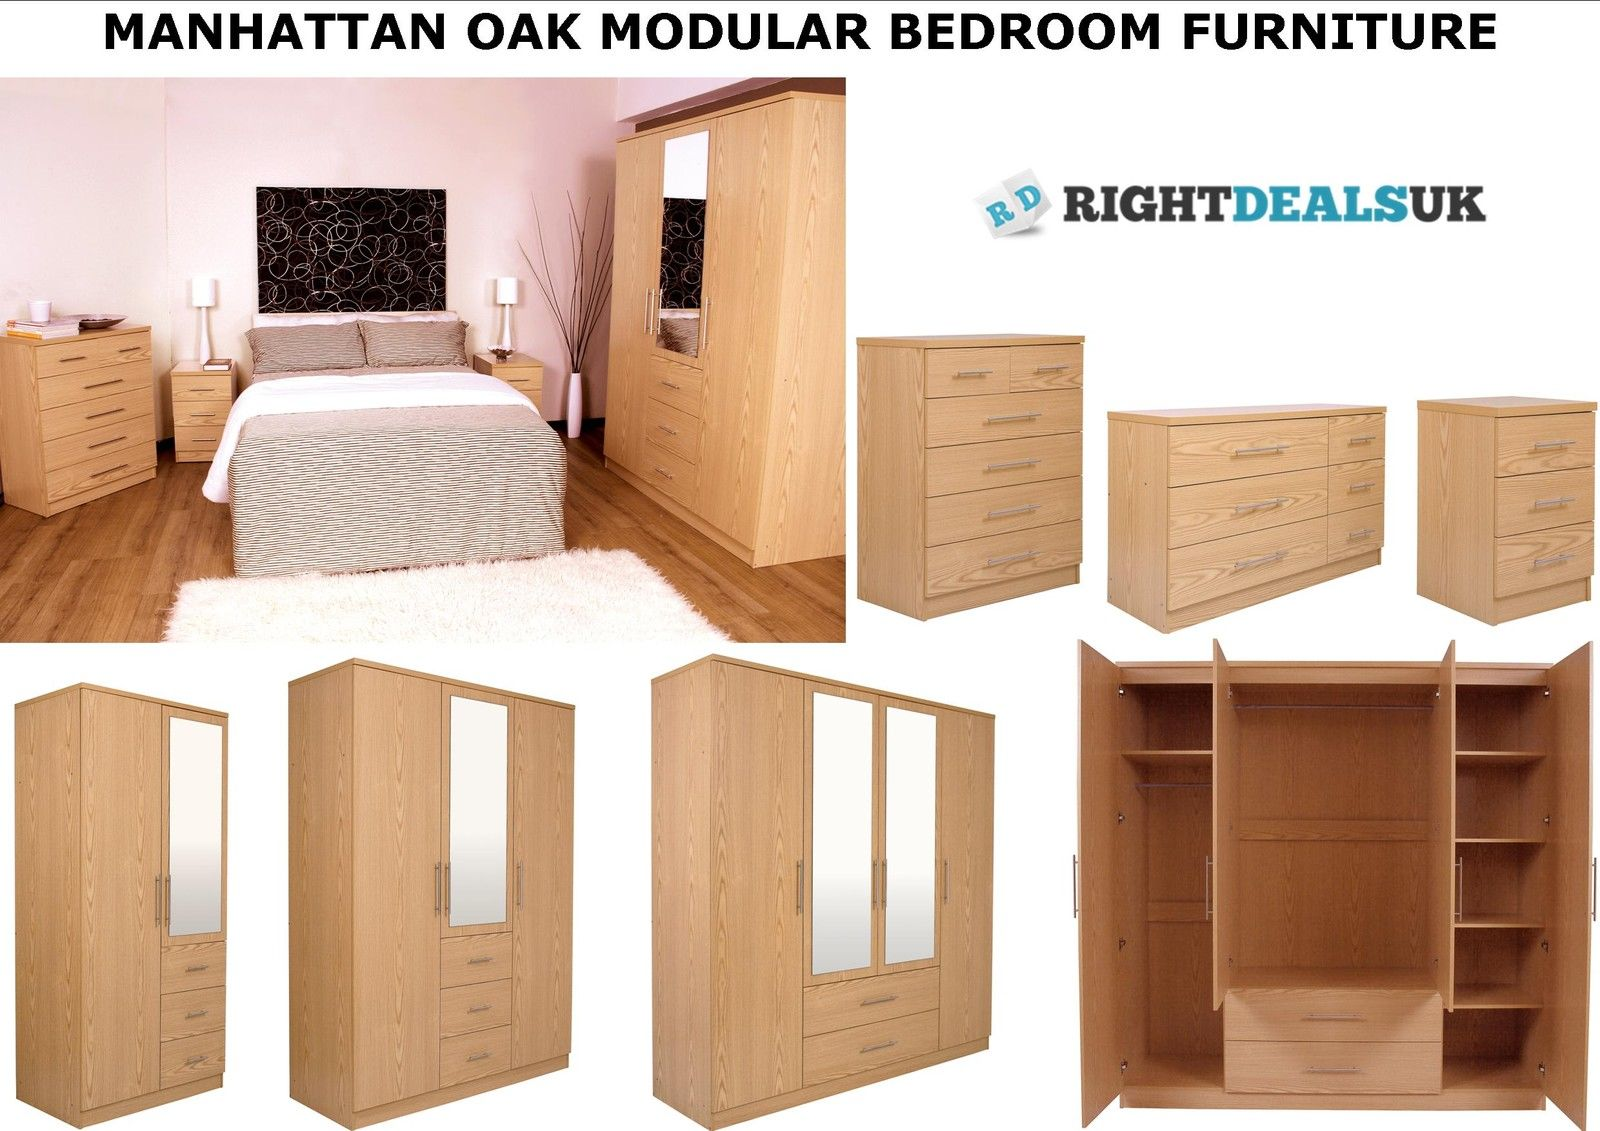 Vancouver oak quality foil bedroom furniture 2 3 4 door for Cheap modern furniture vancouver bc